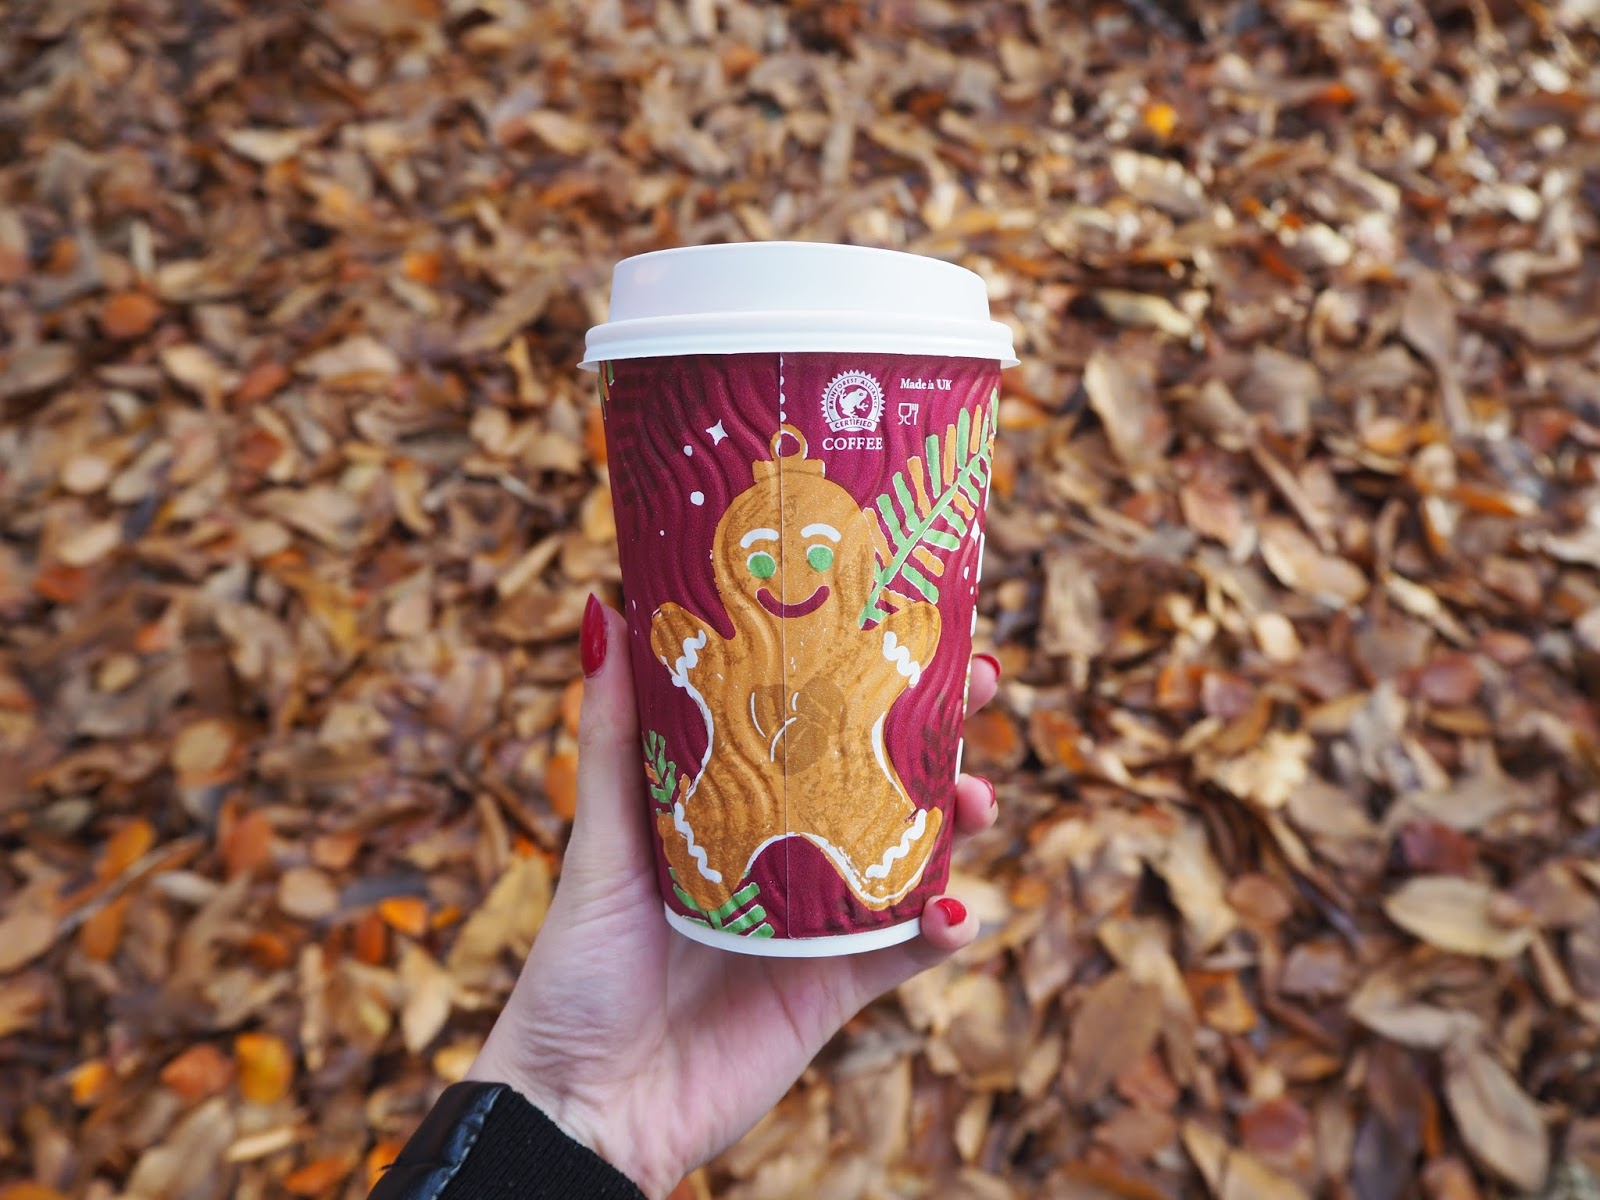 Costa cup with festive print